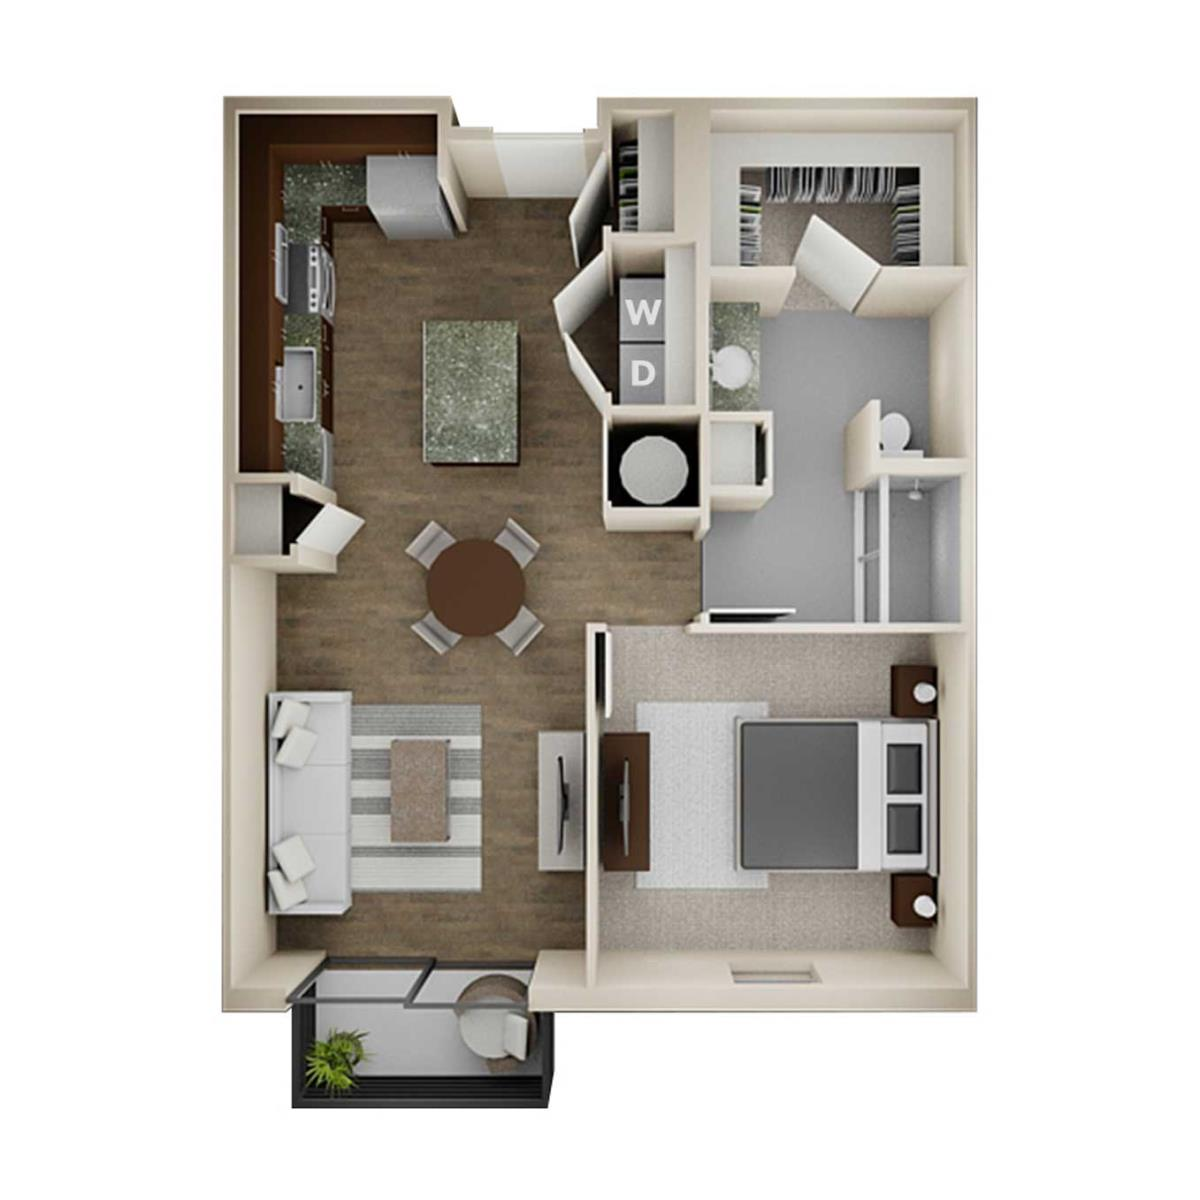 753 sq. ft. 1A floor plan